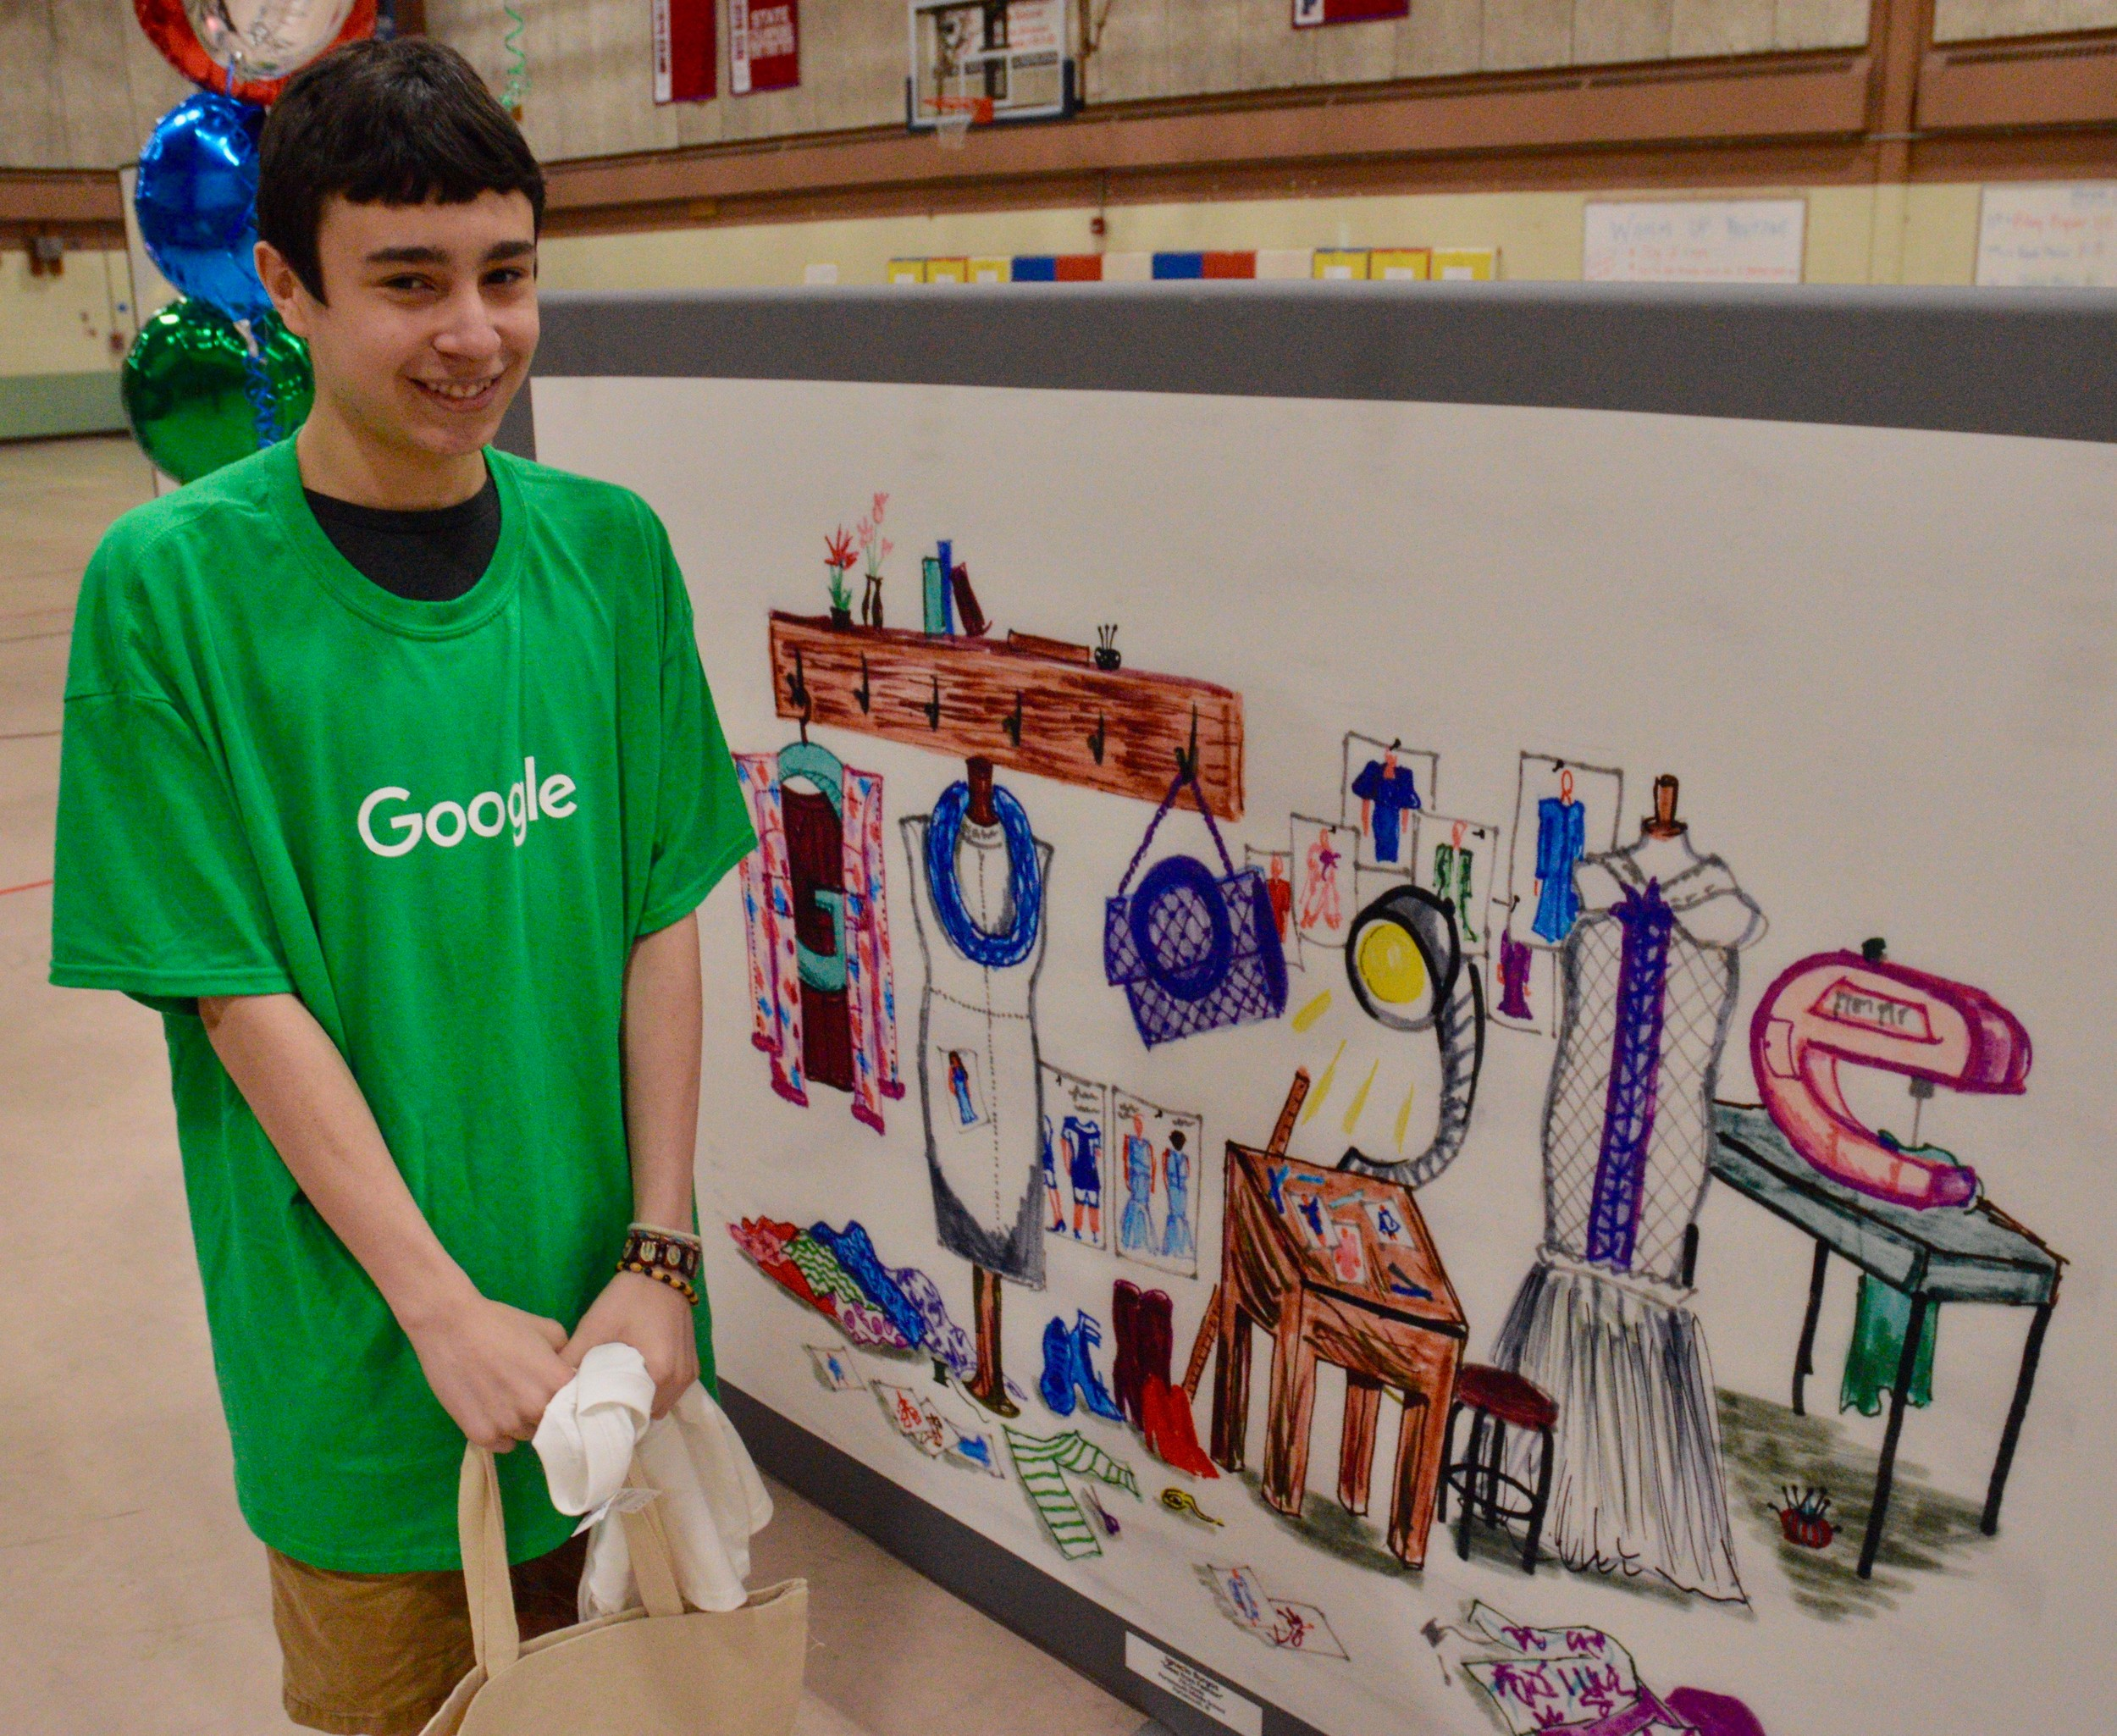 portsmouth student is rhode island s doodle 4 google winner eastbayri com news opinion things to do in the east bay doodle 4 google winner eastbayri com